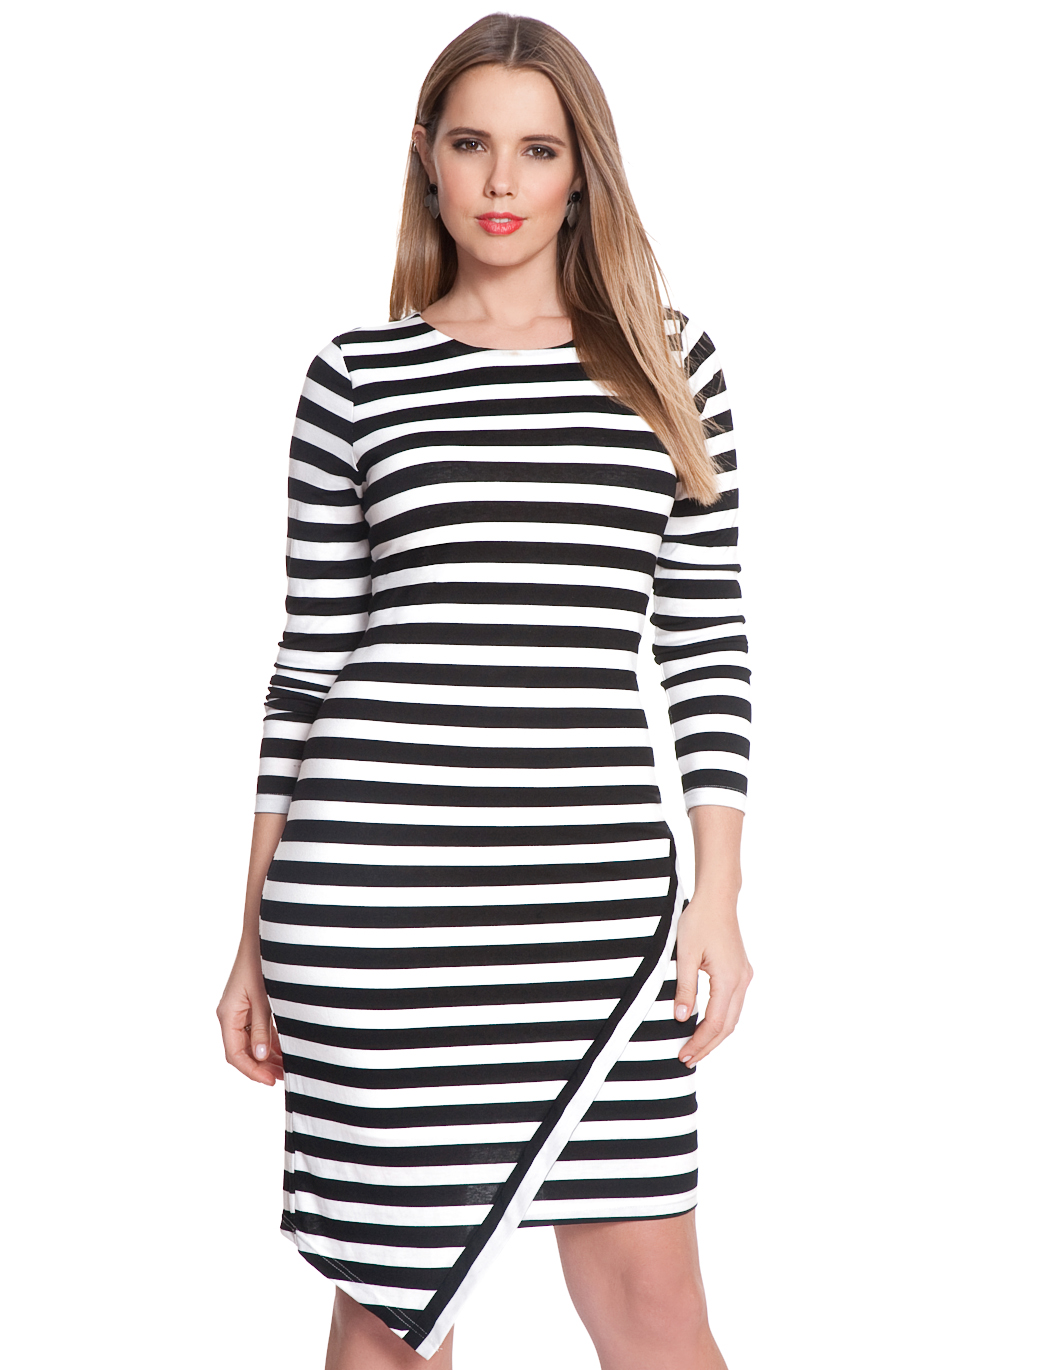 Asymmetrical Hem Striped Dress | Women\'s Plus Size Dresses | ELOQUII